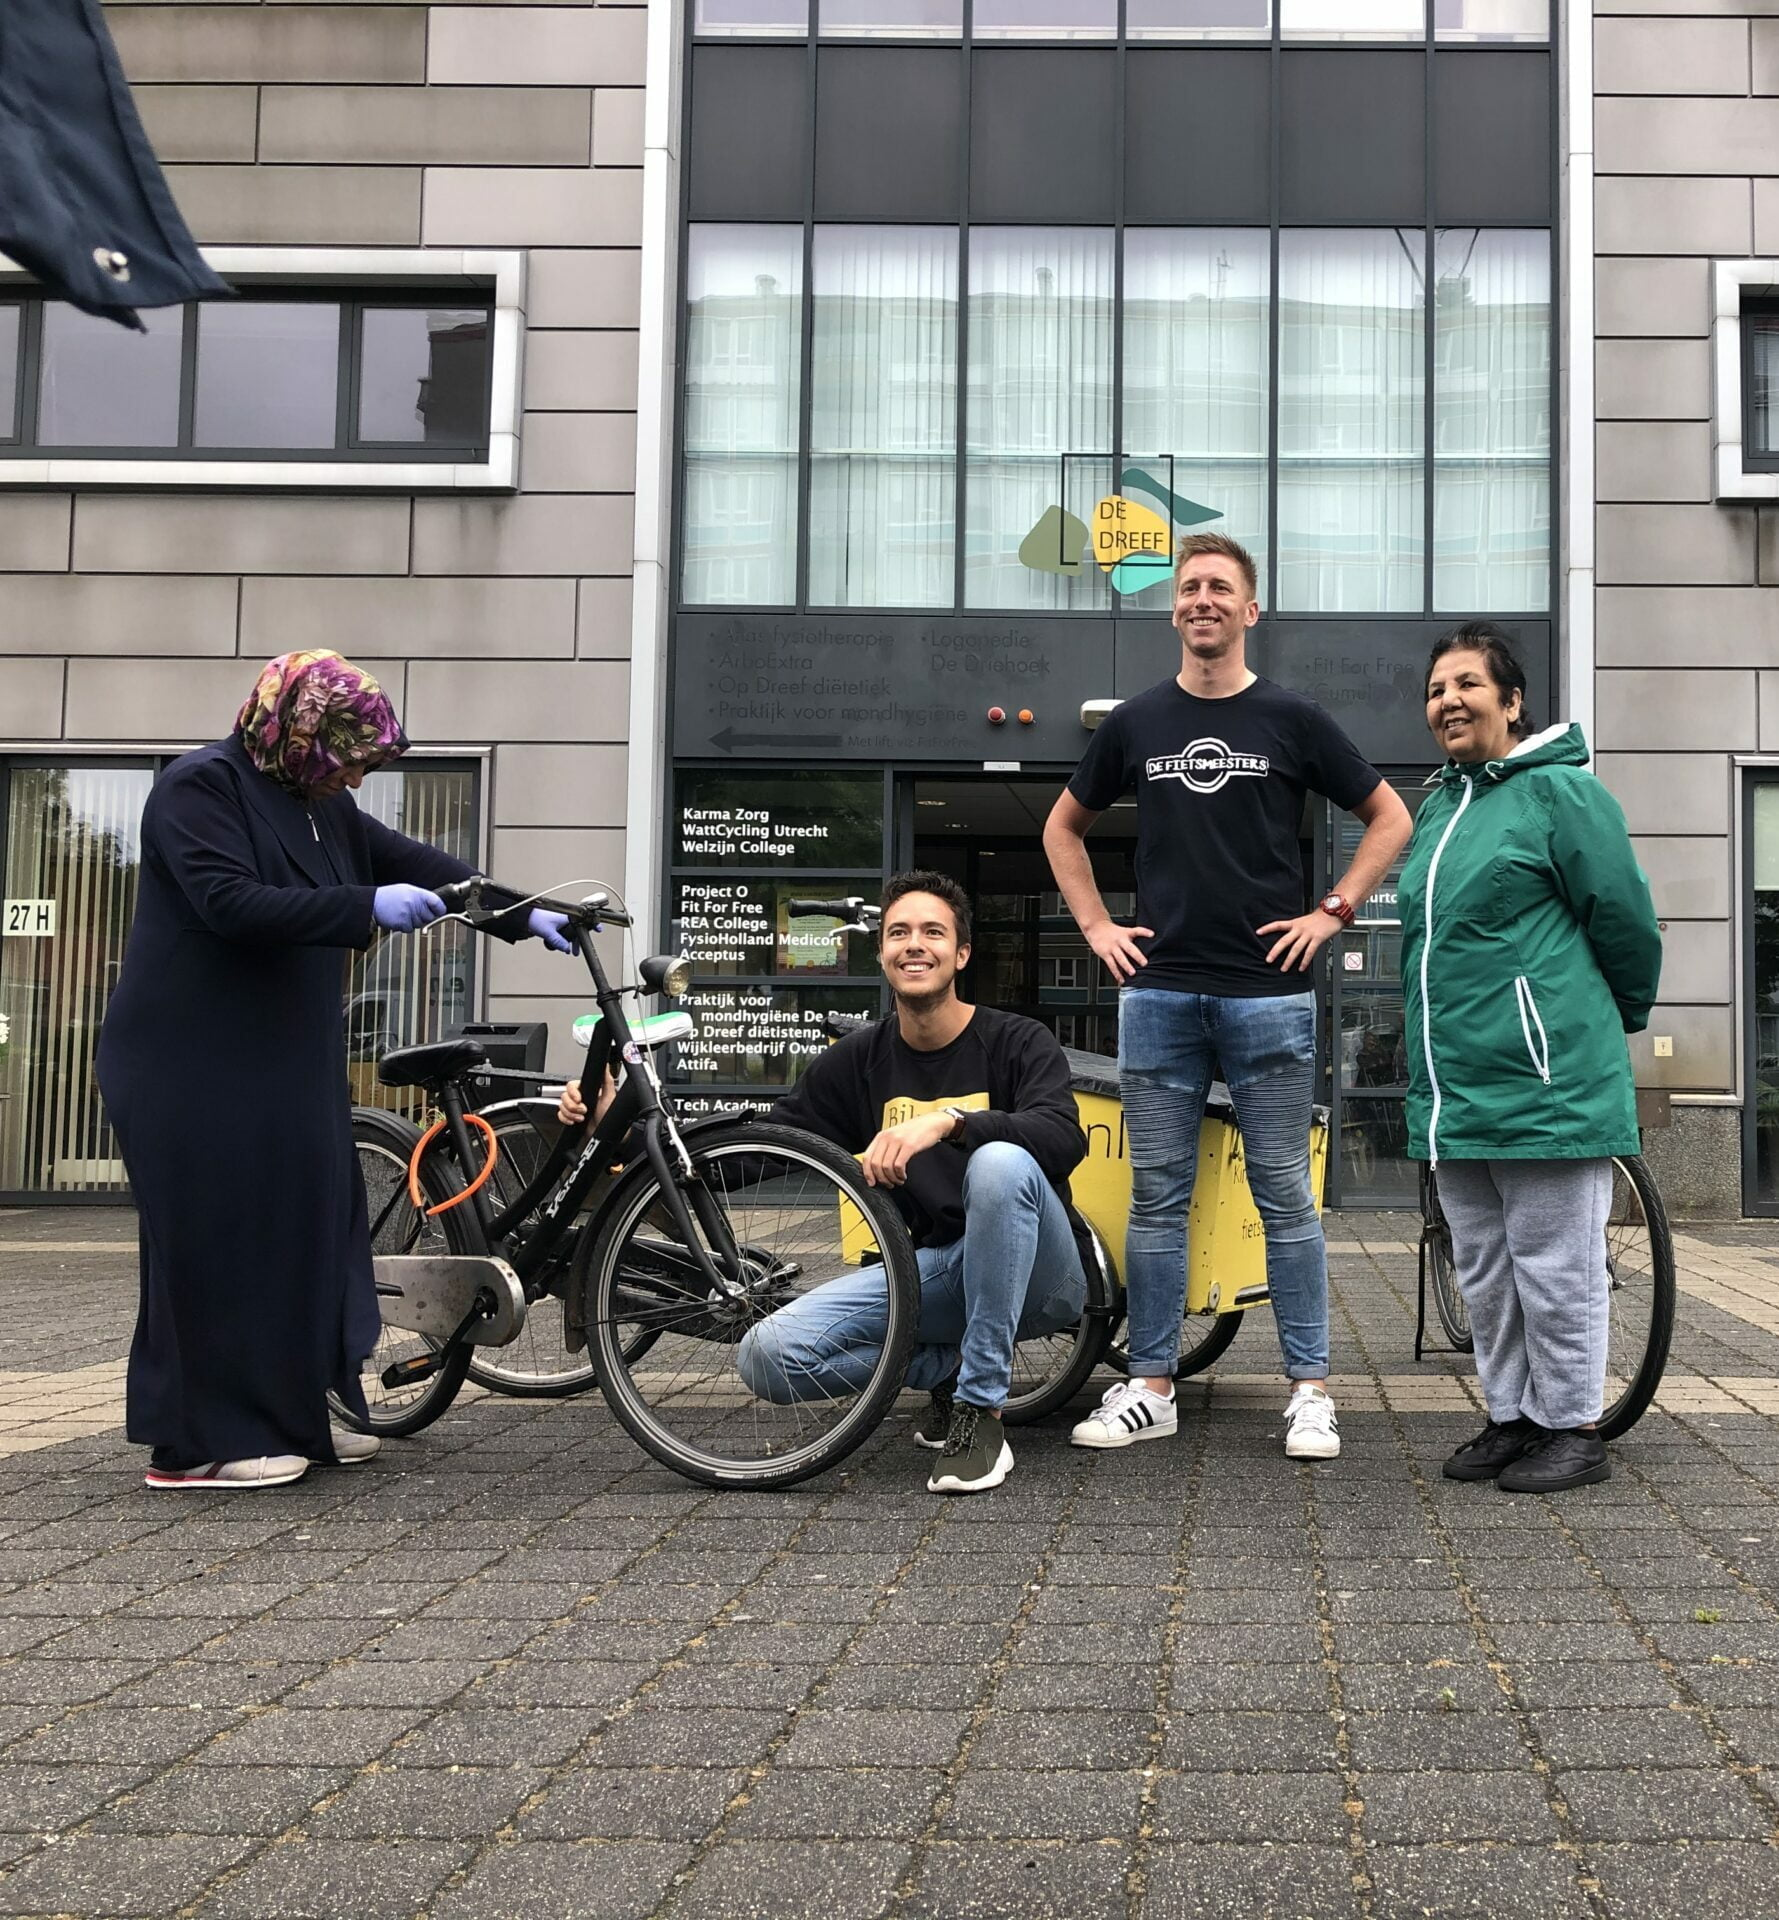 Kick-off 'DeFietsmeesters' project